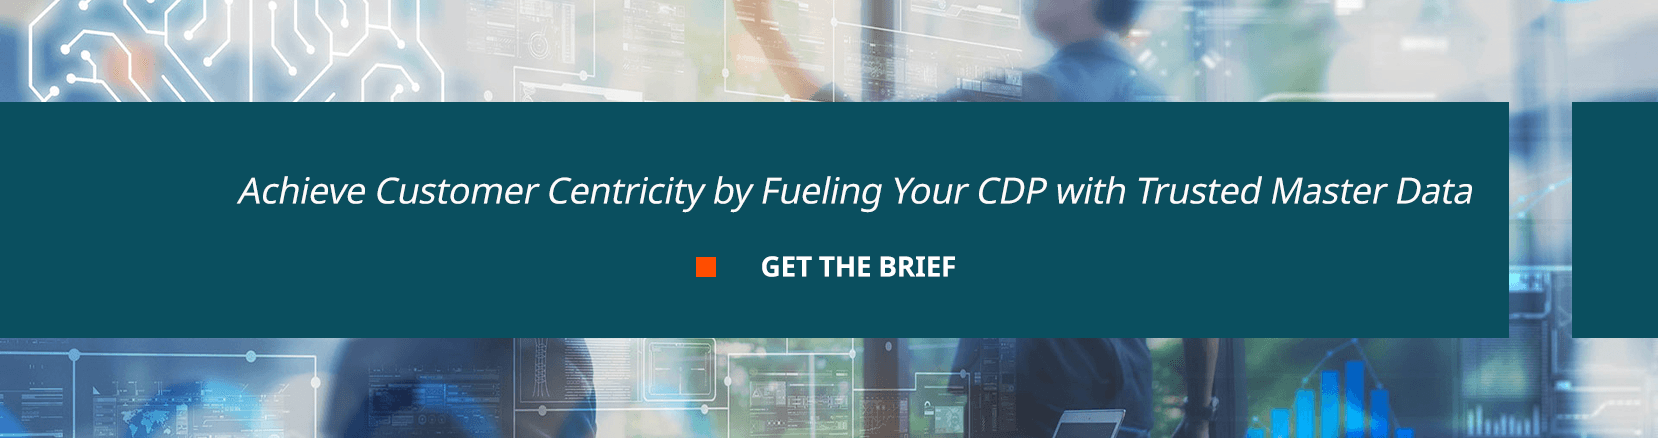 Achieve Customer Centricity by Fueling Your CDP with Trusted Master Data